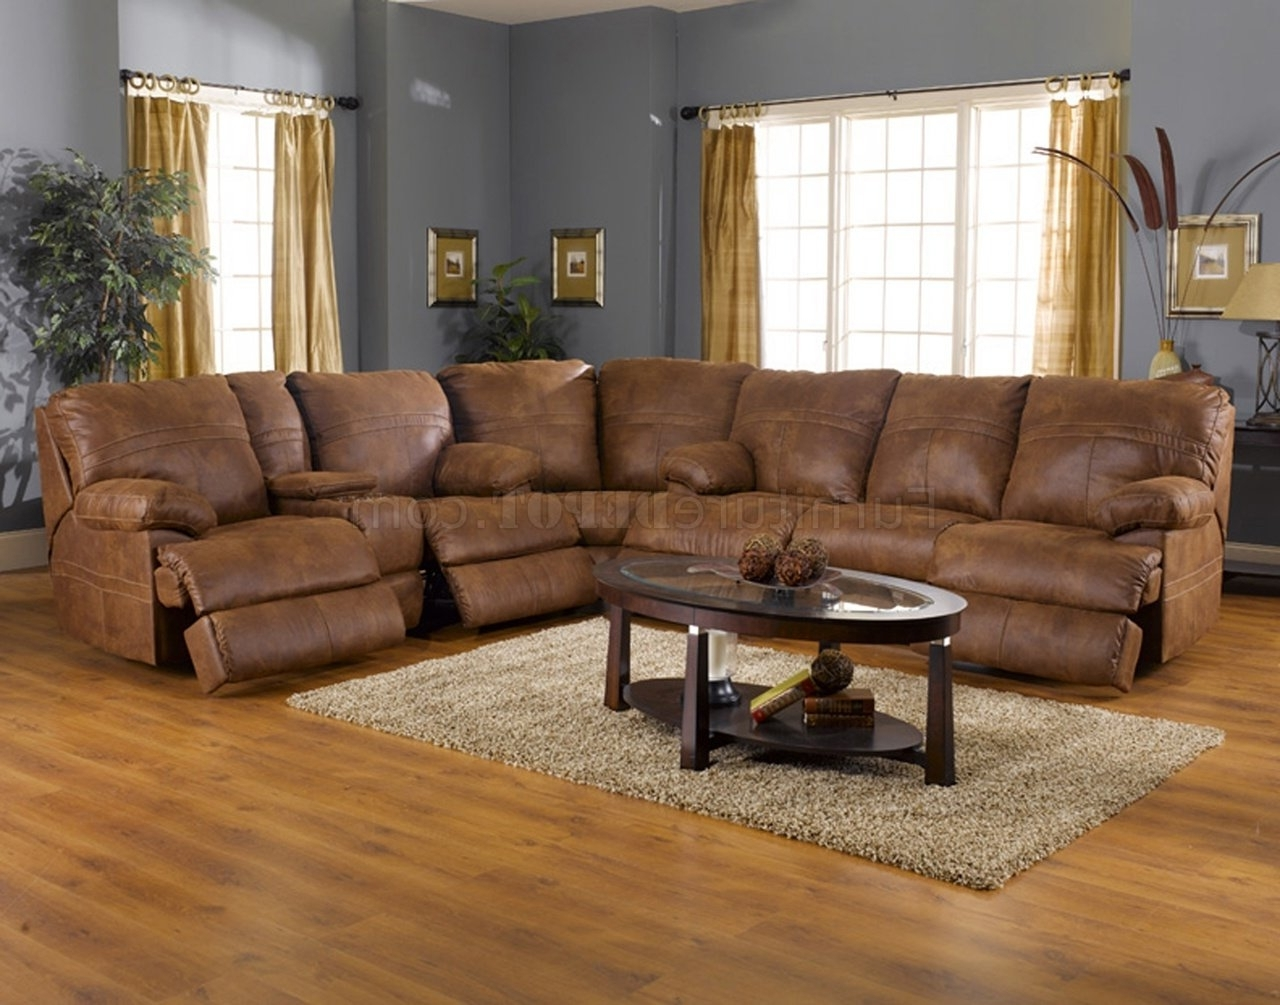 Faux Leather Sectional Sofas With Recent Rich Tanner Faux Leather Fabric Ranger Modern Sectional Sofa (View 5 of 15)